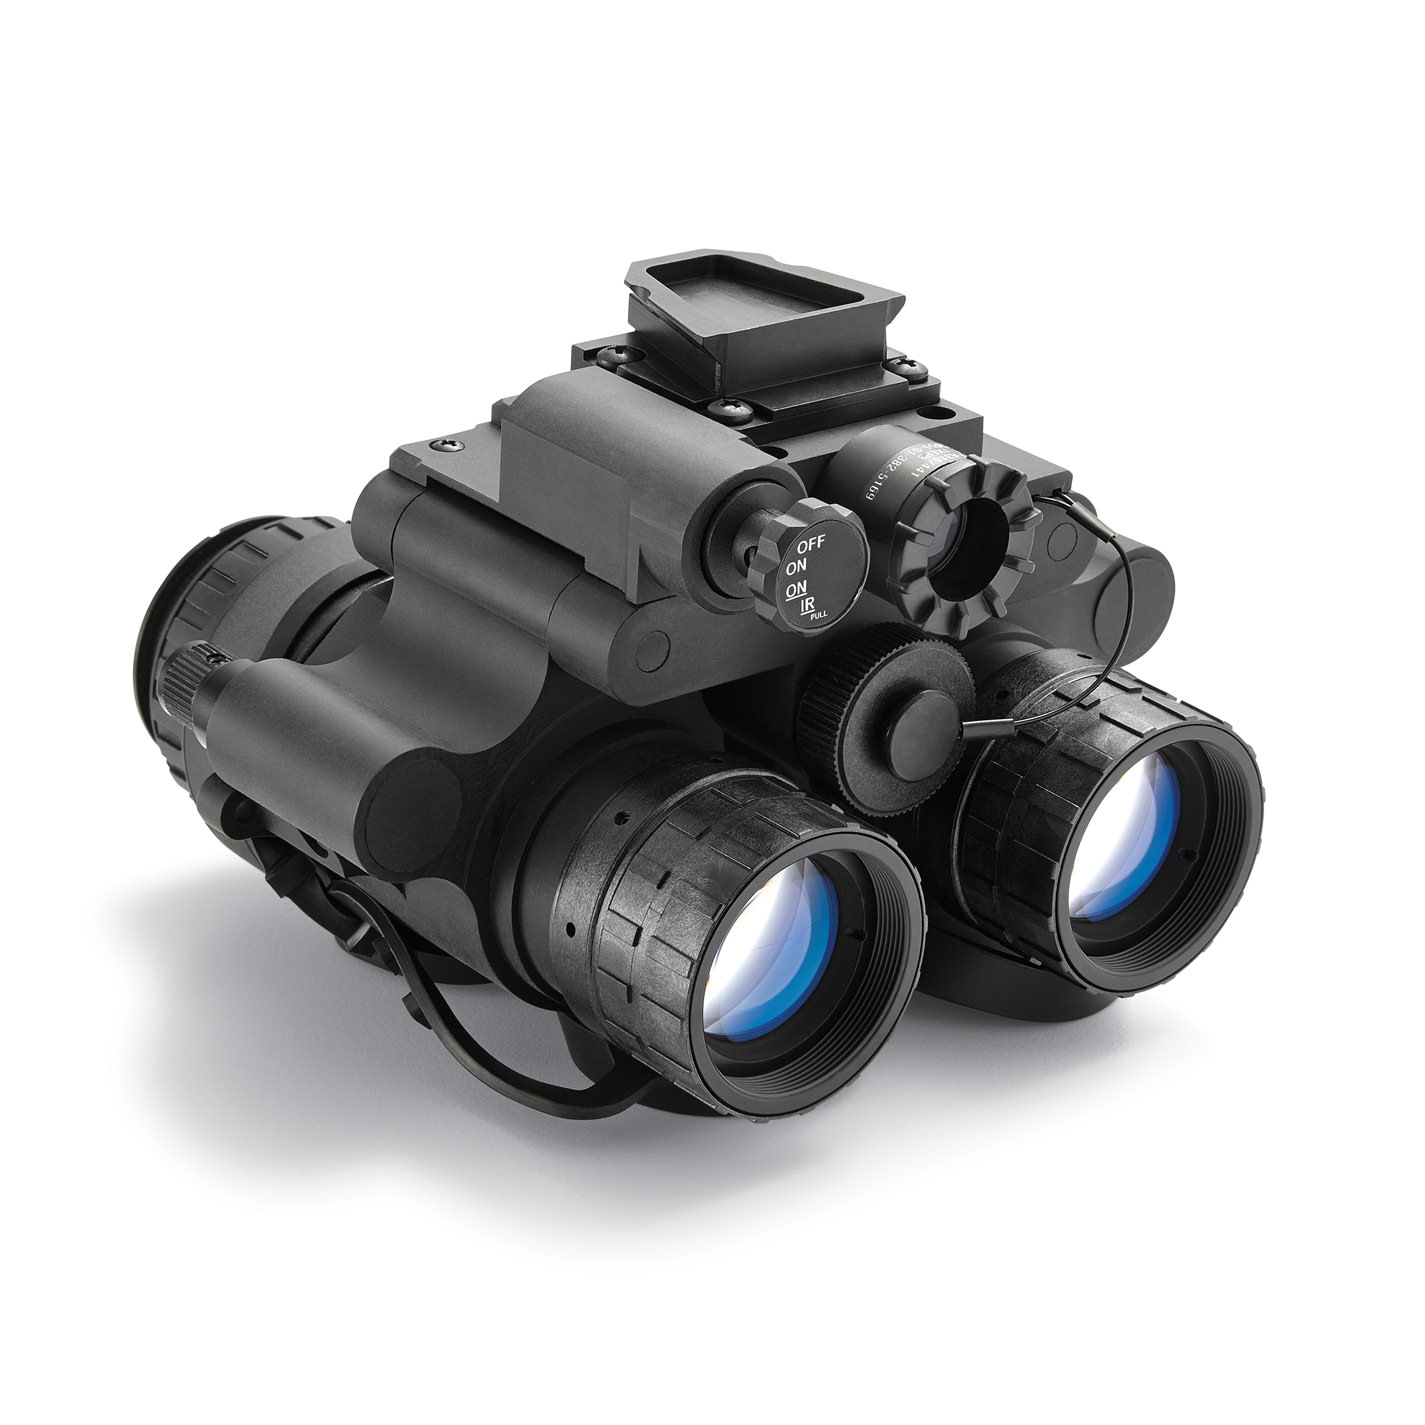 BNVD-DG-SGFK Night Vision Binocular Special Ground Forces Kit - Dual Gain